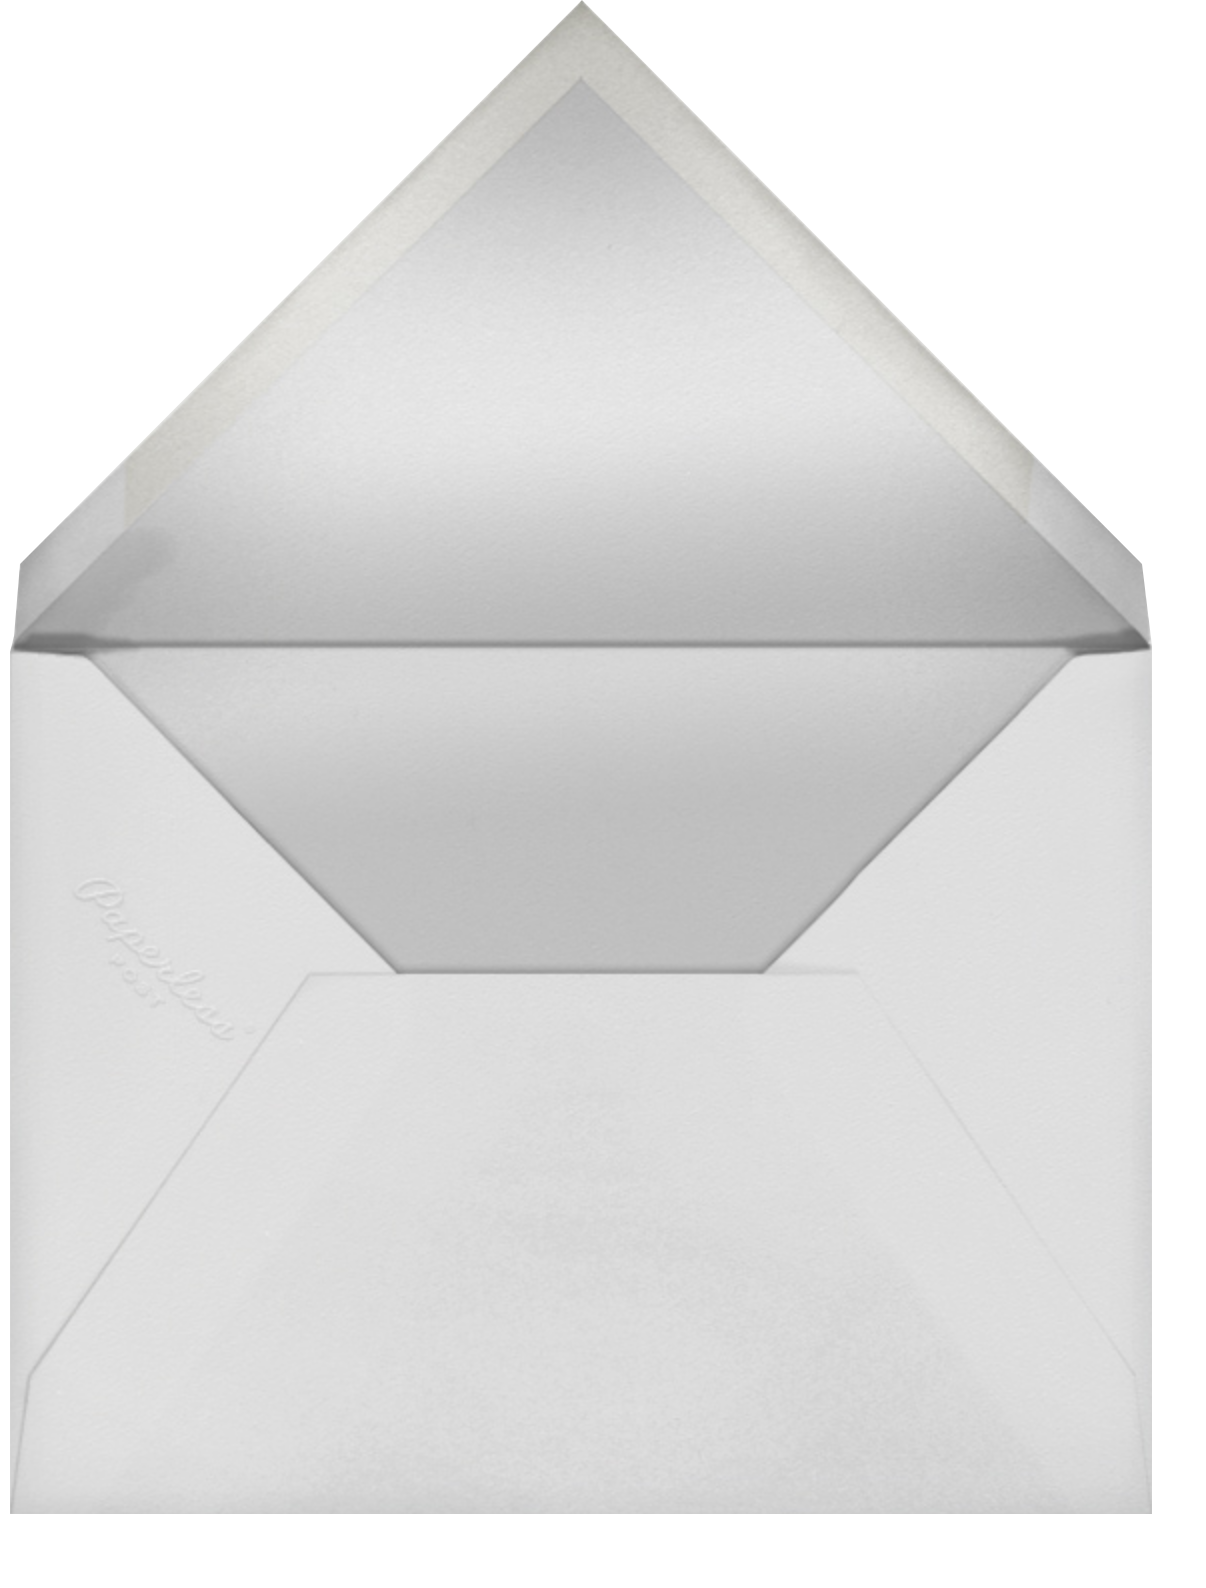 Committed - Paperless Post - Love cards - envelope back